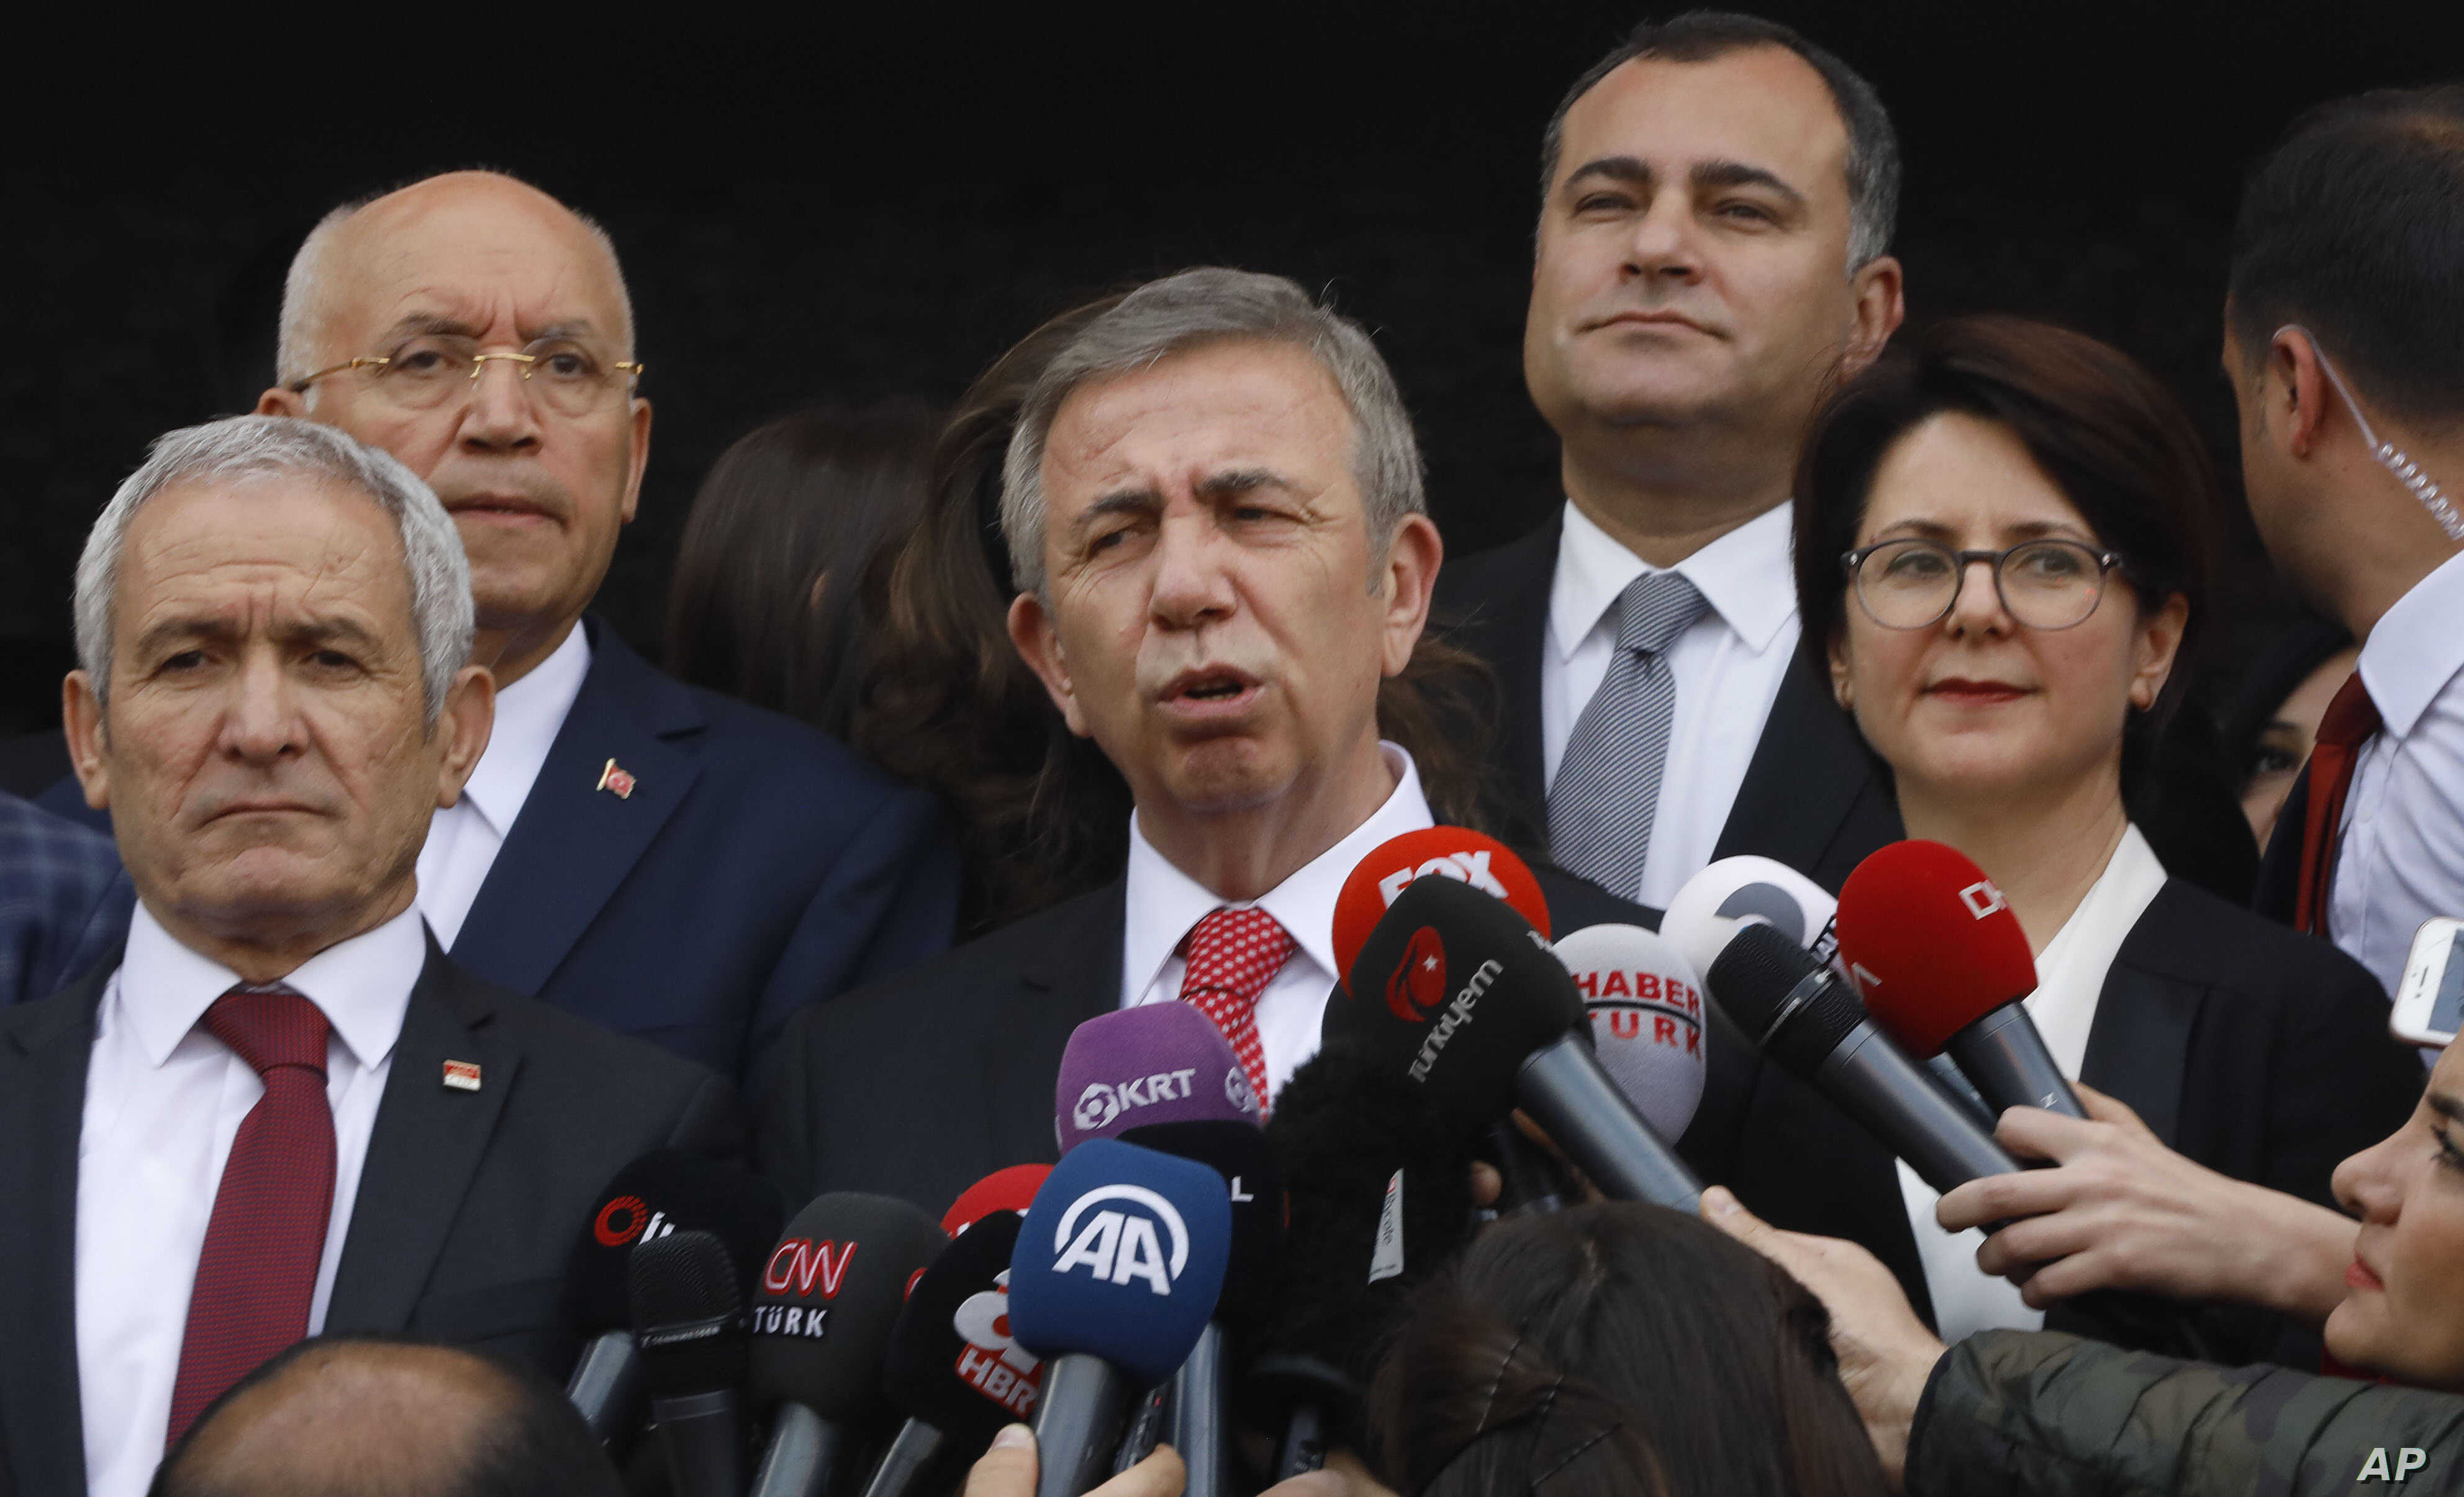 The main Turkish opposition candidate for the country's capital Ankara, Mansur Yavas, center, speaks to the media after he received the document confirming him as new mayor, from Bahattin Ozbas the head of the election board, in Ankara on April 8, 20...